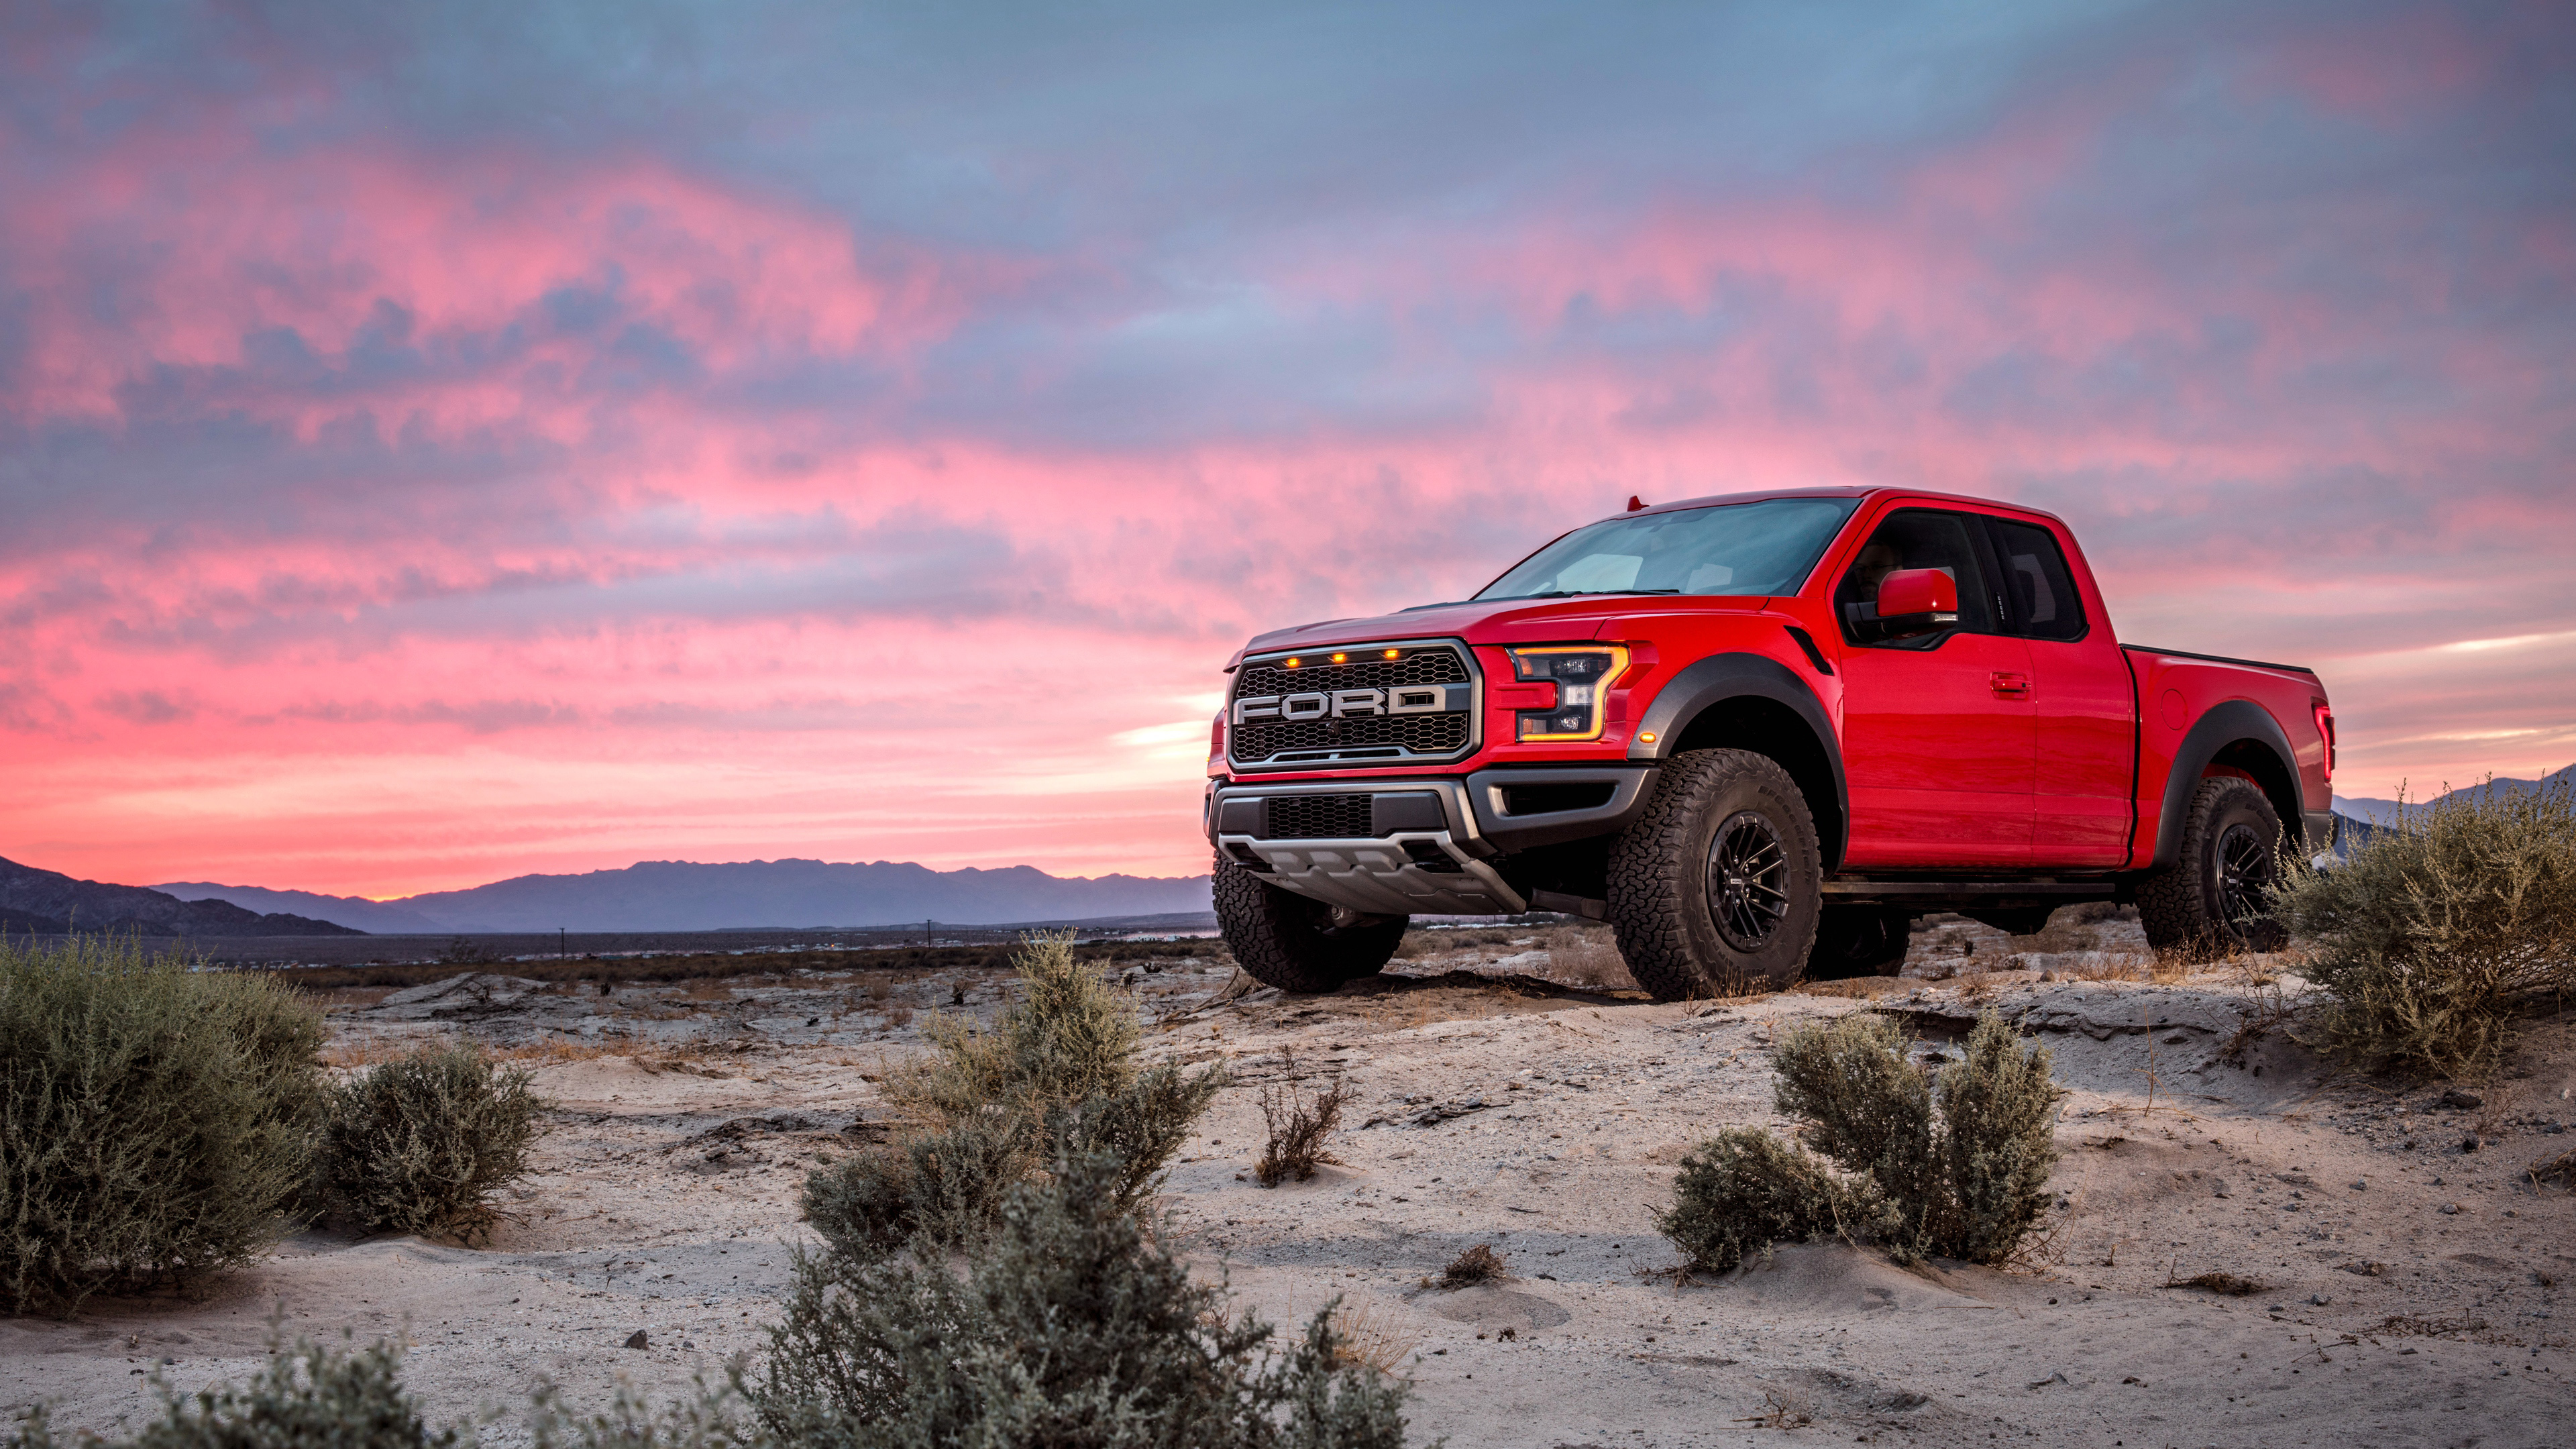 2019 Ford F-150 Raptor 4K Wallpaper | HD Car Wallpapers ...